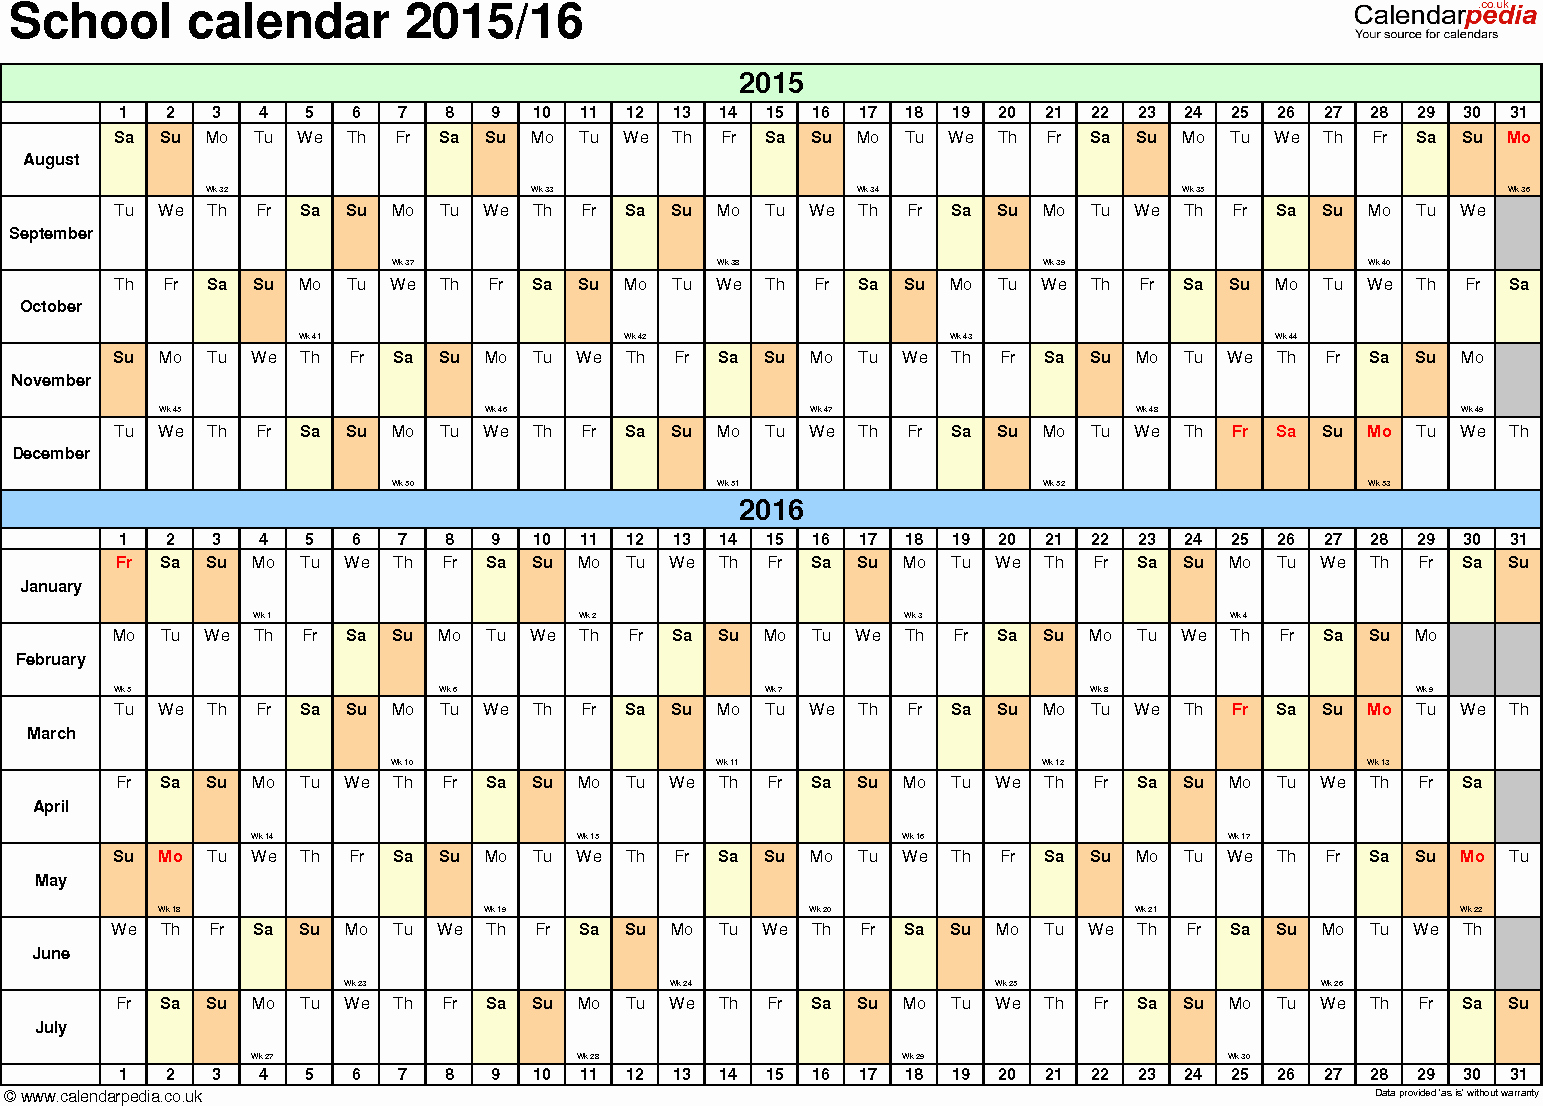 Blank Calendar 2016-17 Inspirational School Calendars 2015 2016 as Free Printable Word Templates